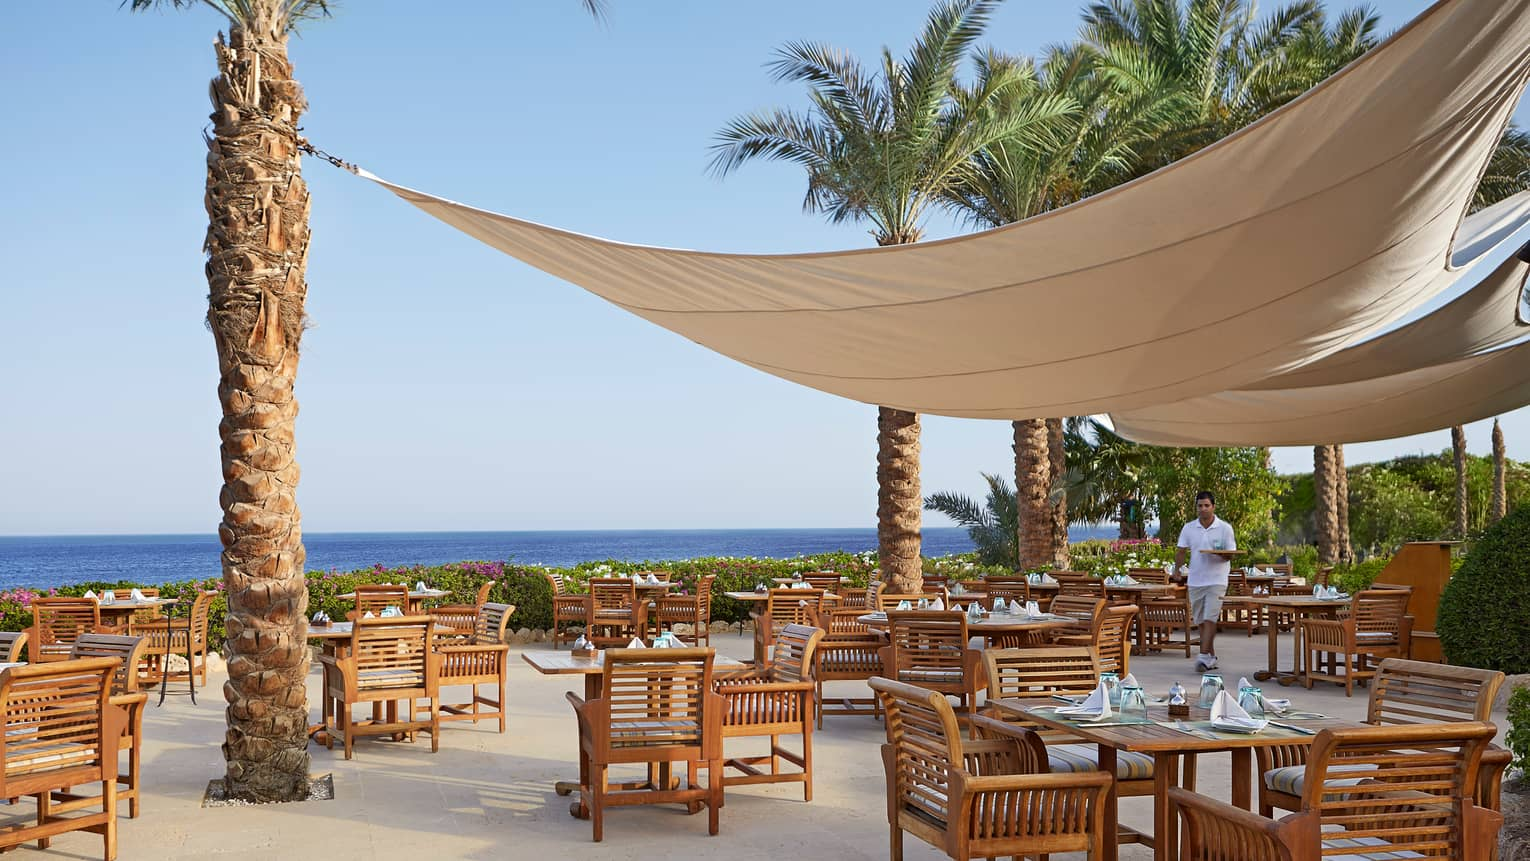 Canvas canopies attached to palm tree extend over outdoor Reef Grill patio, sea in background